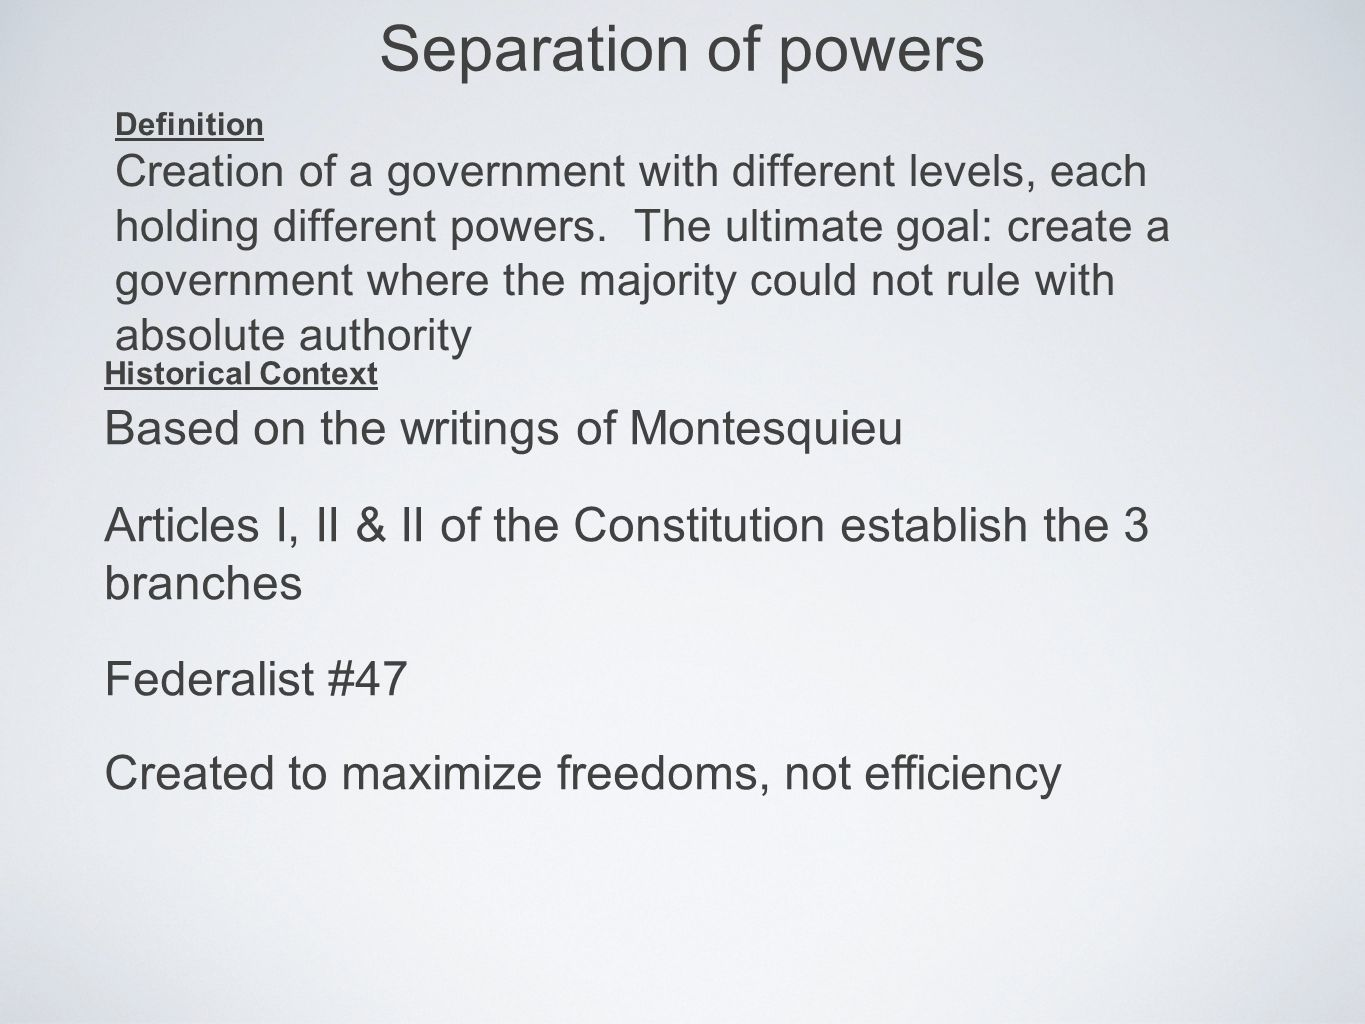 separation of powers Importance in our Government Forces a complementary system where all parts must work together to get things done for the whole.